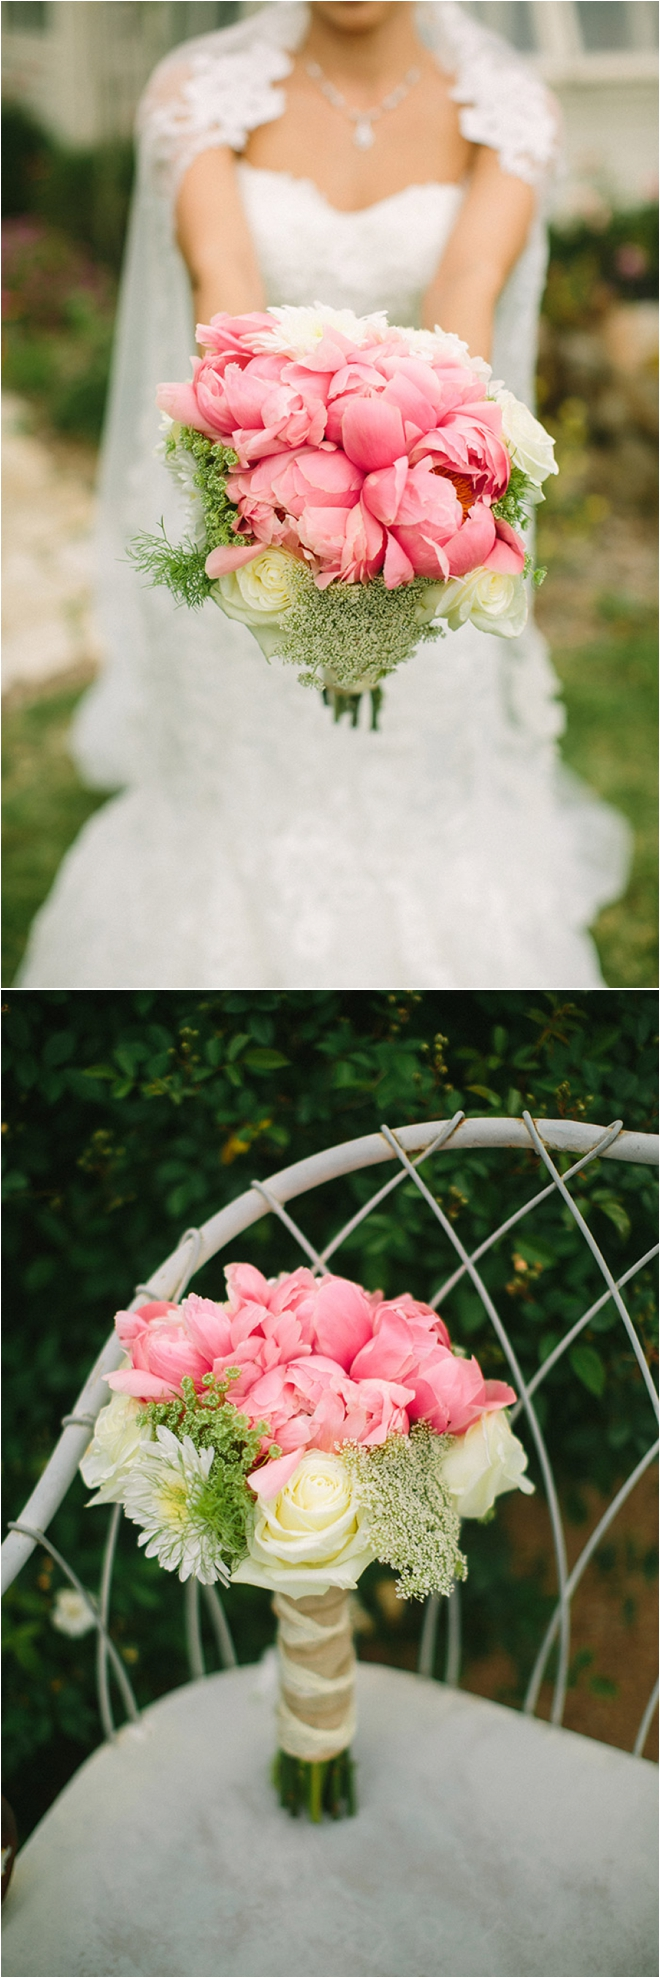 Pink and White Garden Party Wedding by Awake Photography